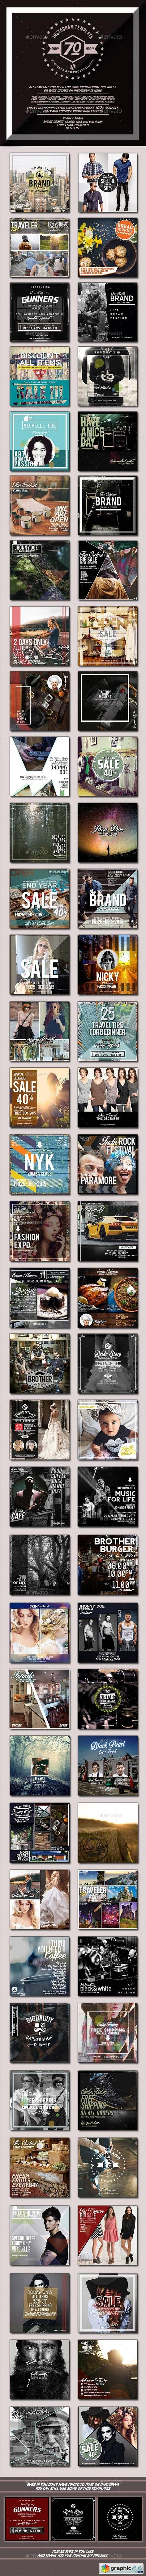 70 Instagram Templates 14092315